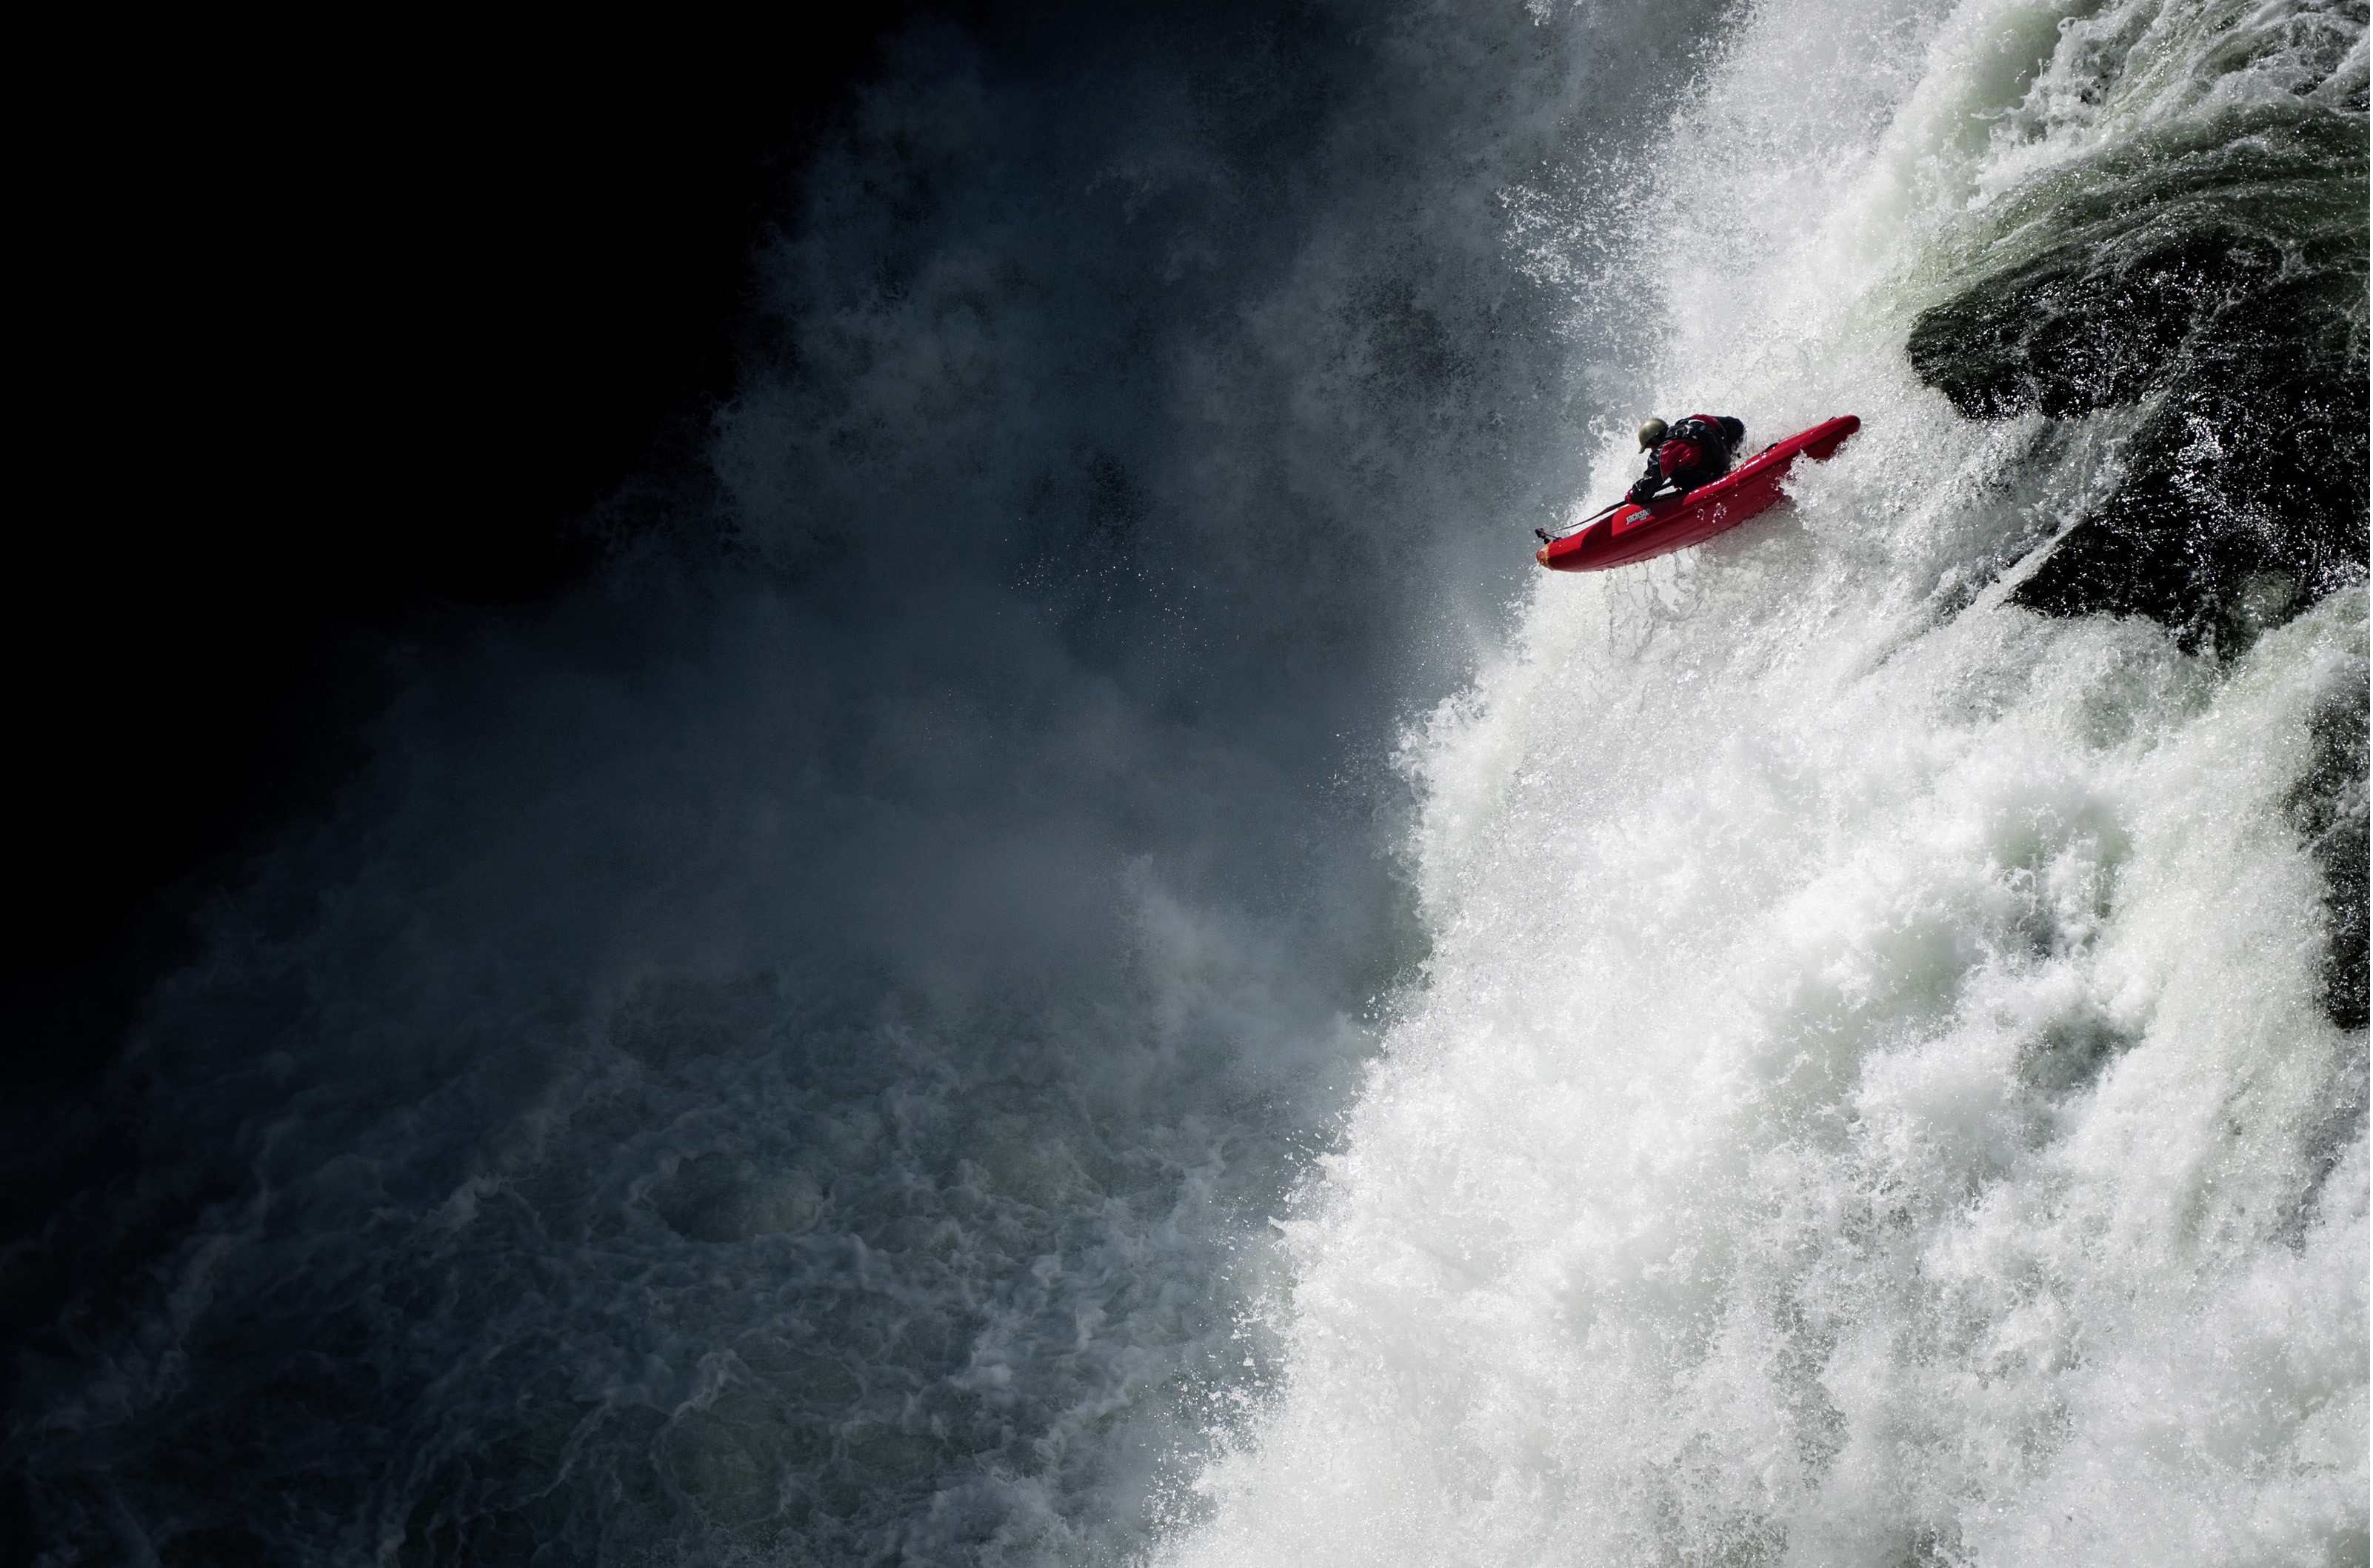 Red Bull on hunt for 'jaw-dropping' action photography